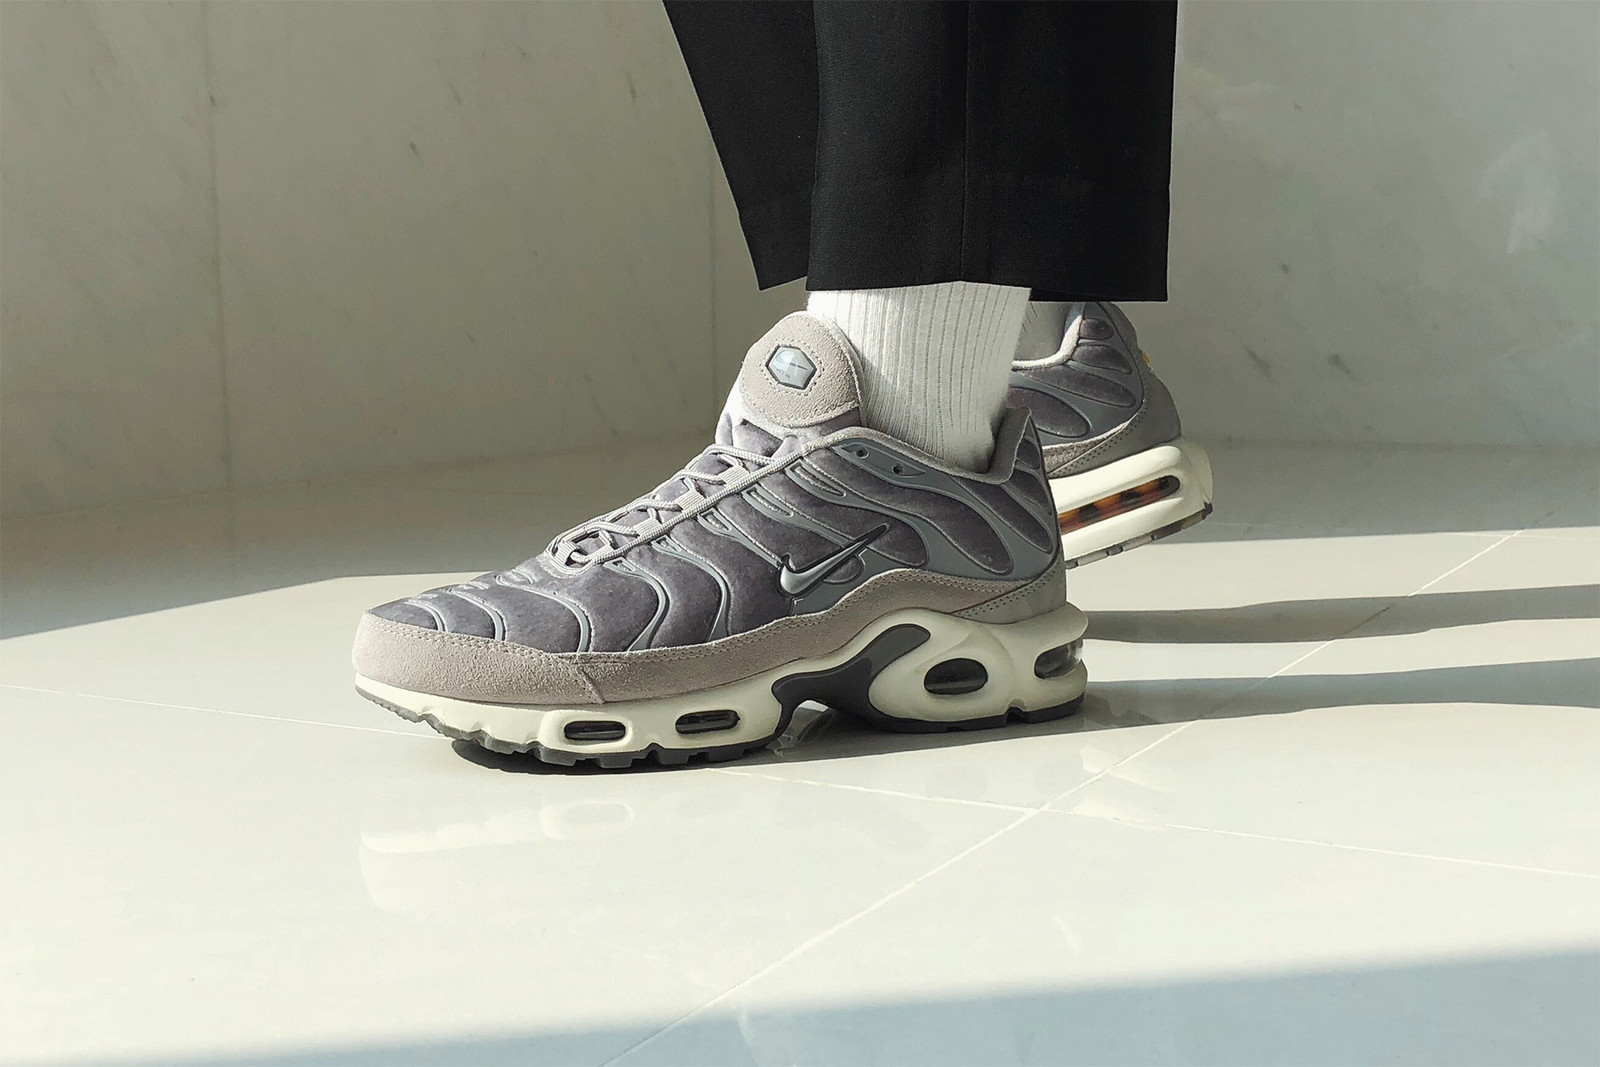 new style 2eebf 62f18 Review: Nike Air Max Plus LX Velvet